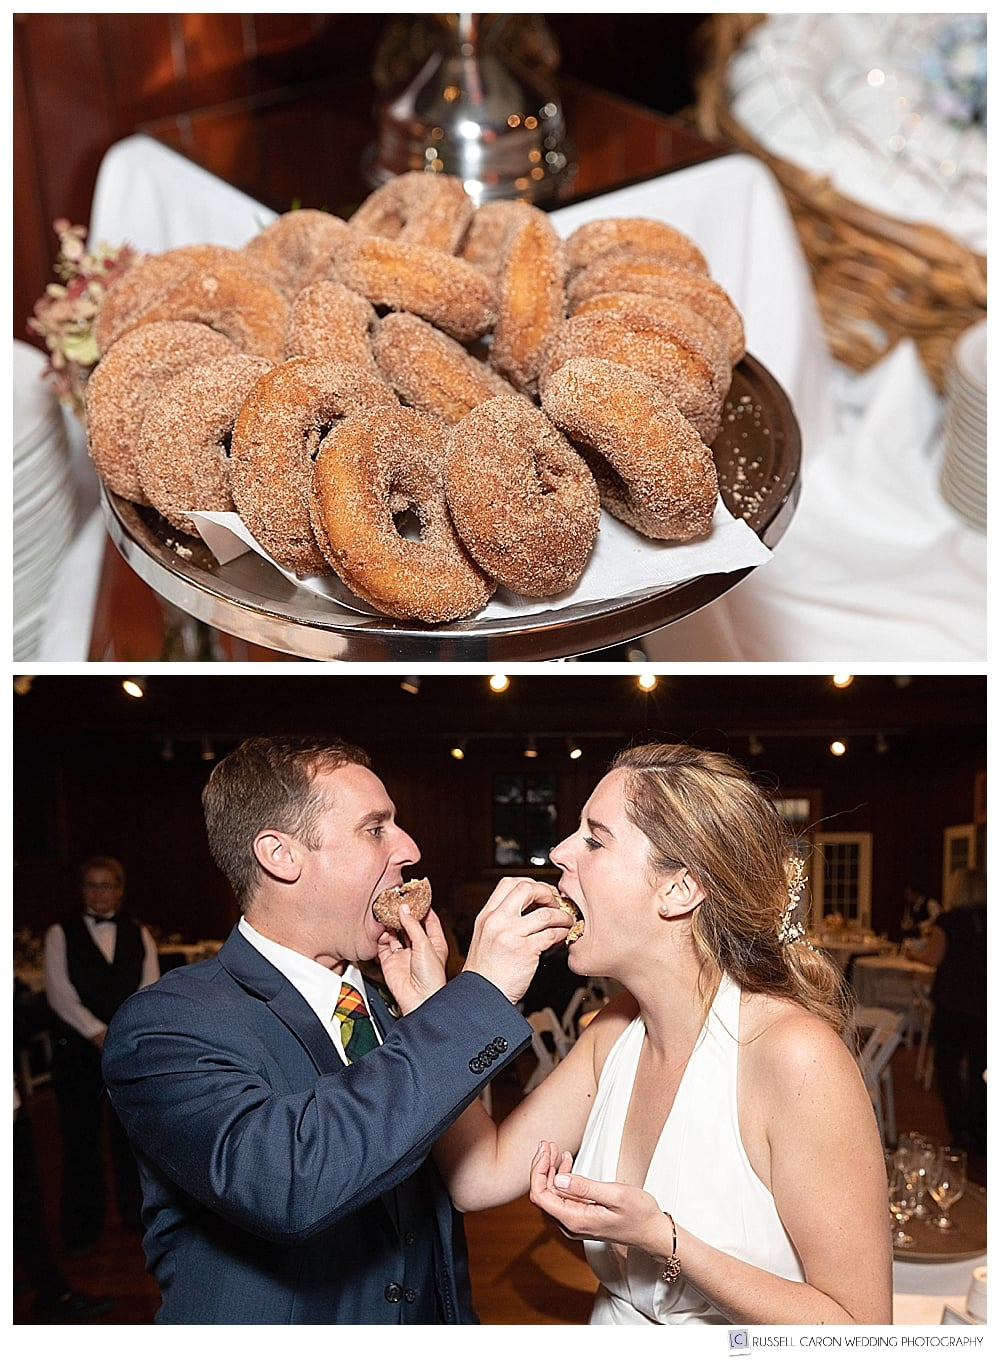 bride and groom feeding each other doughnuts